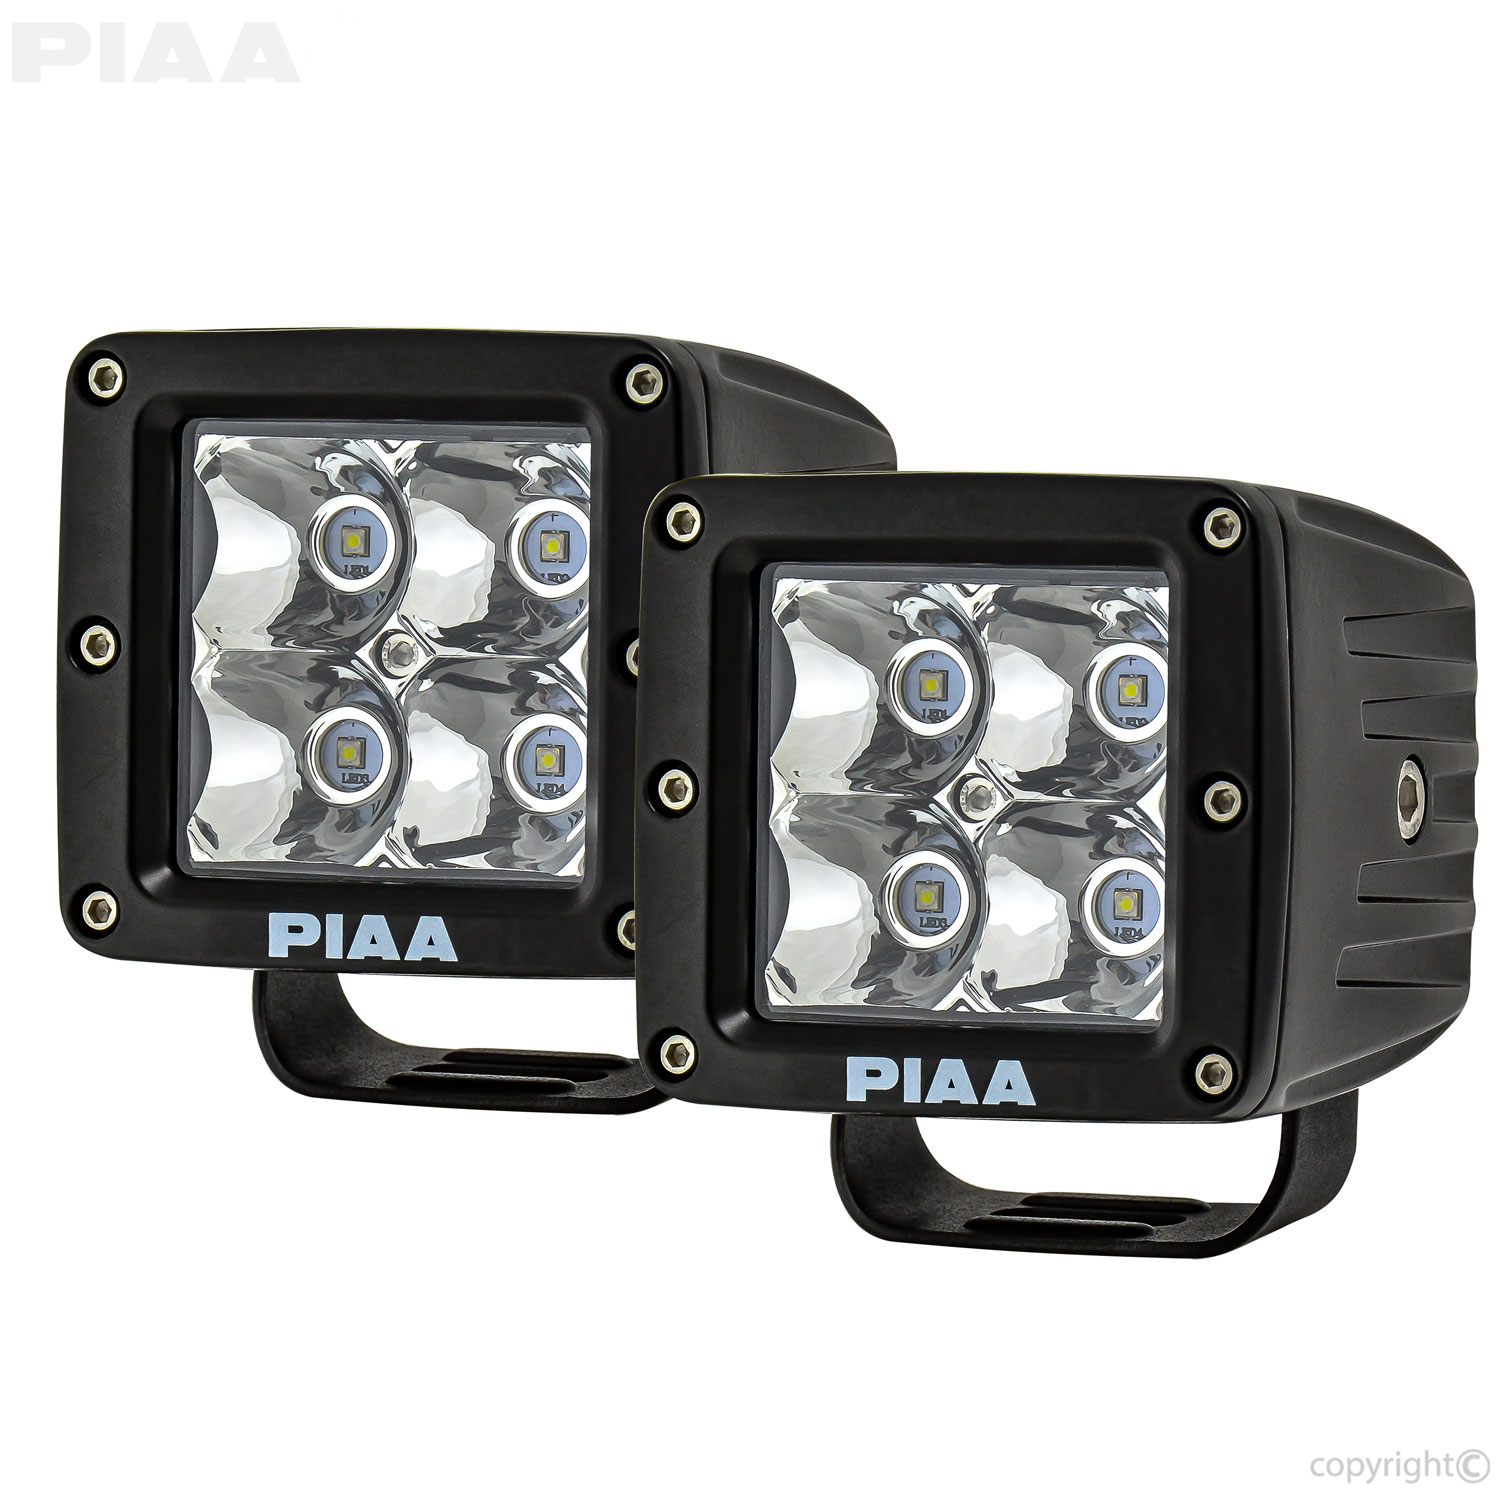 Piaa Quad Dual Hr on Piaa Fog Light Wiring Diagram